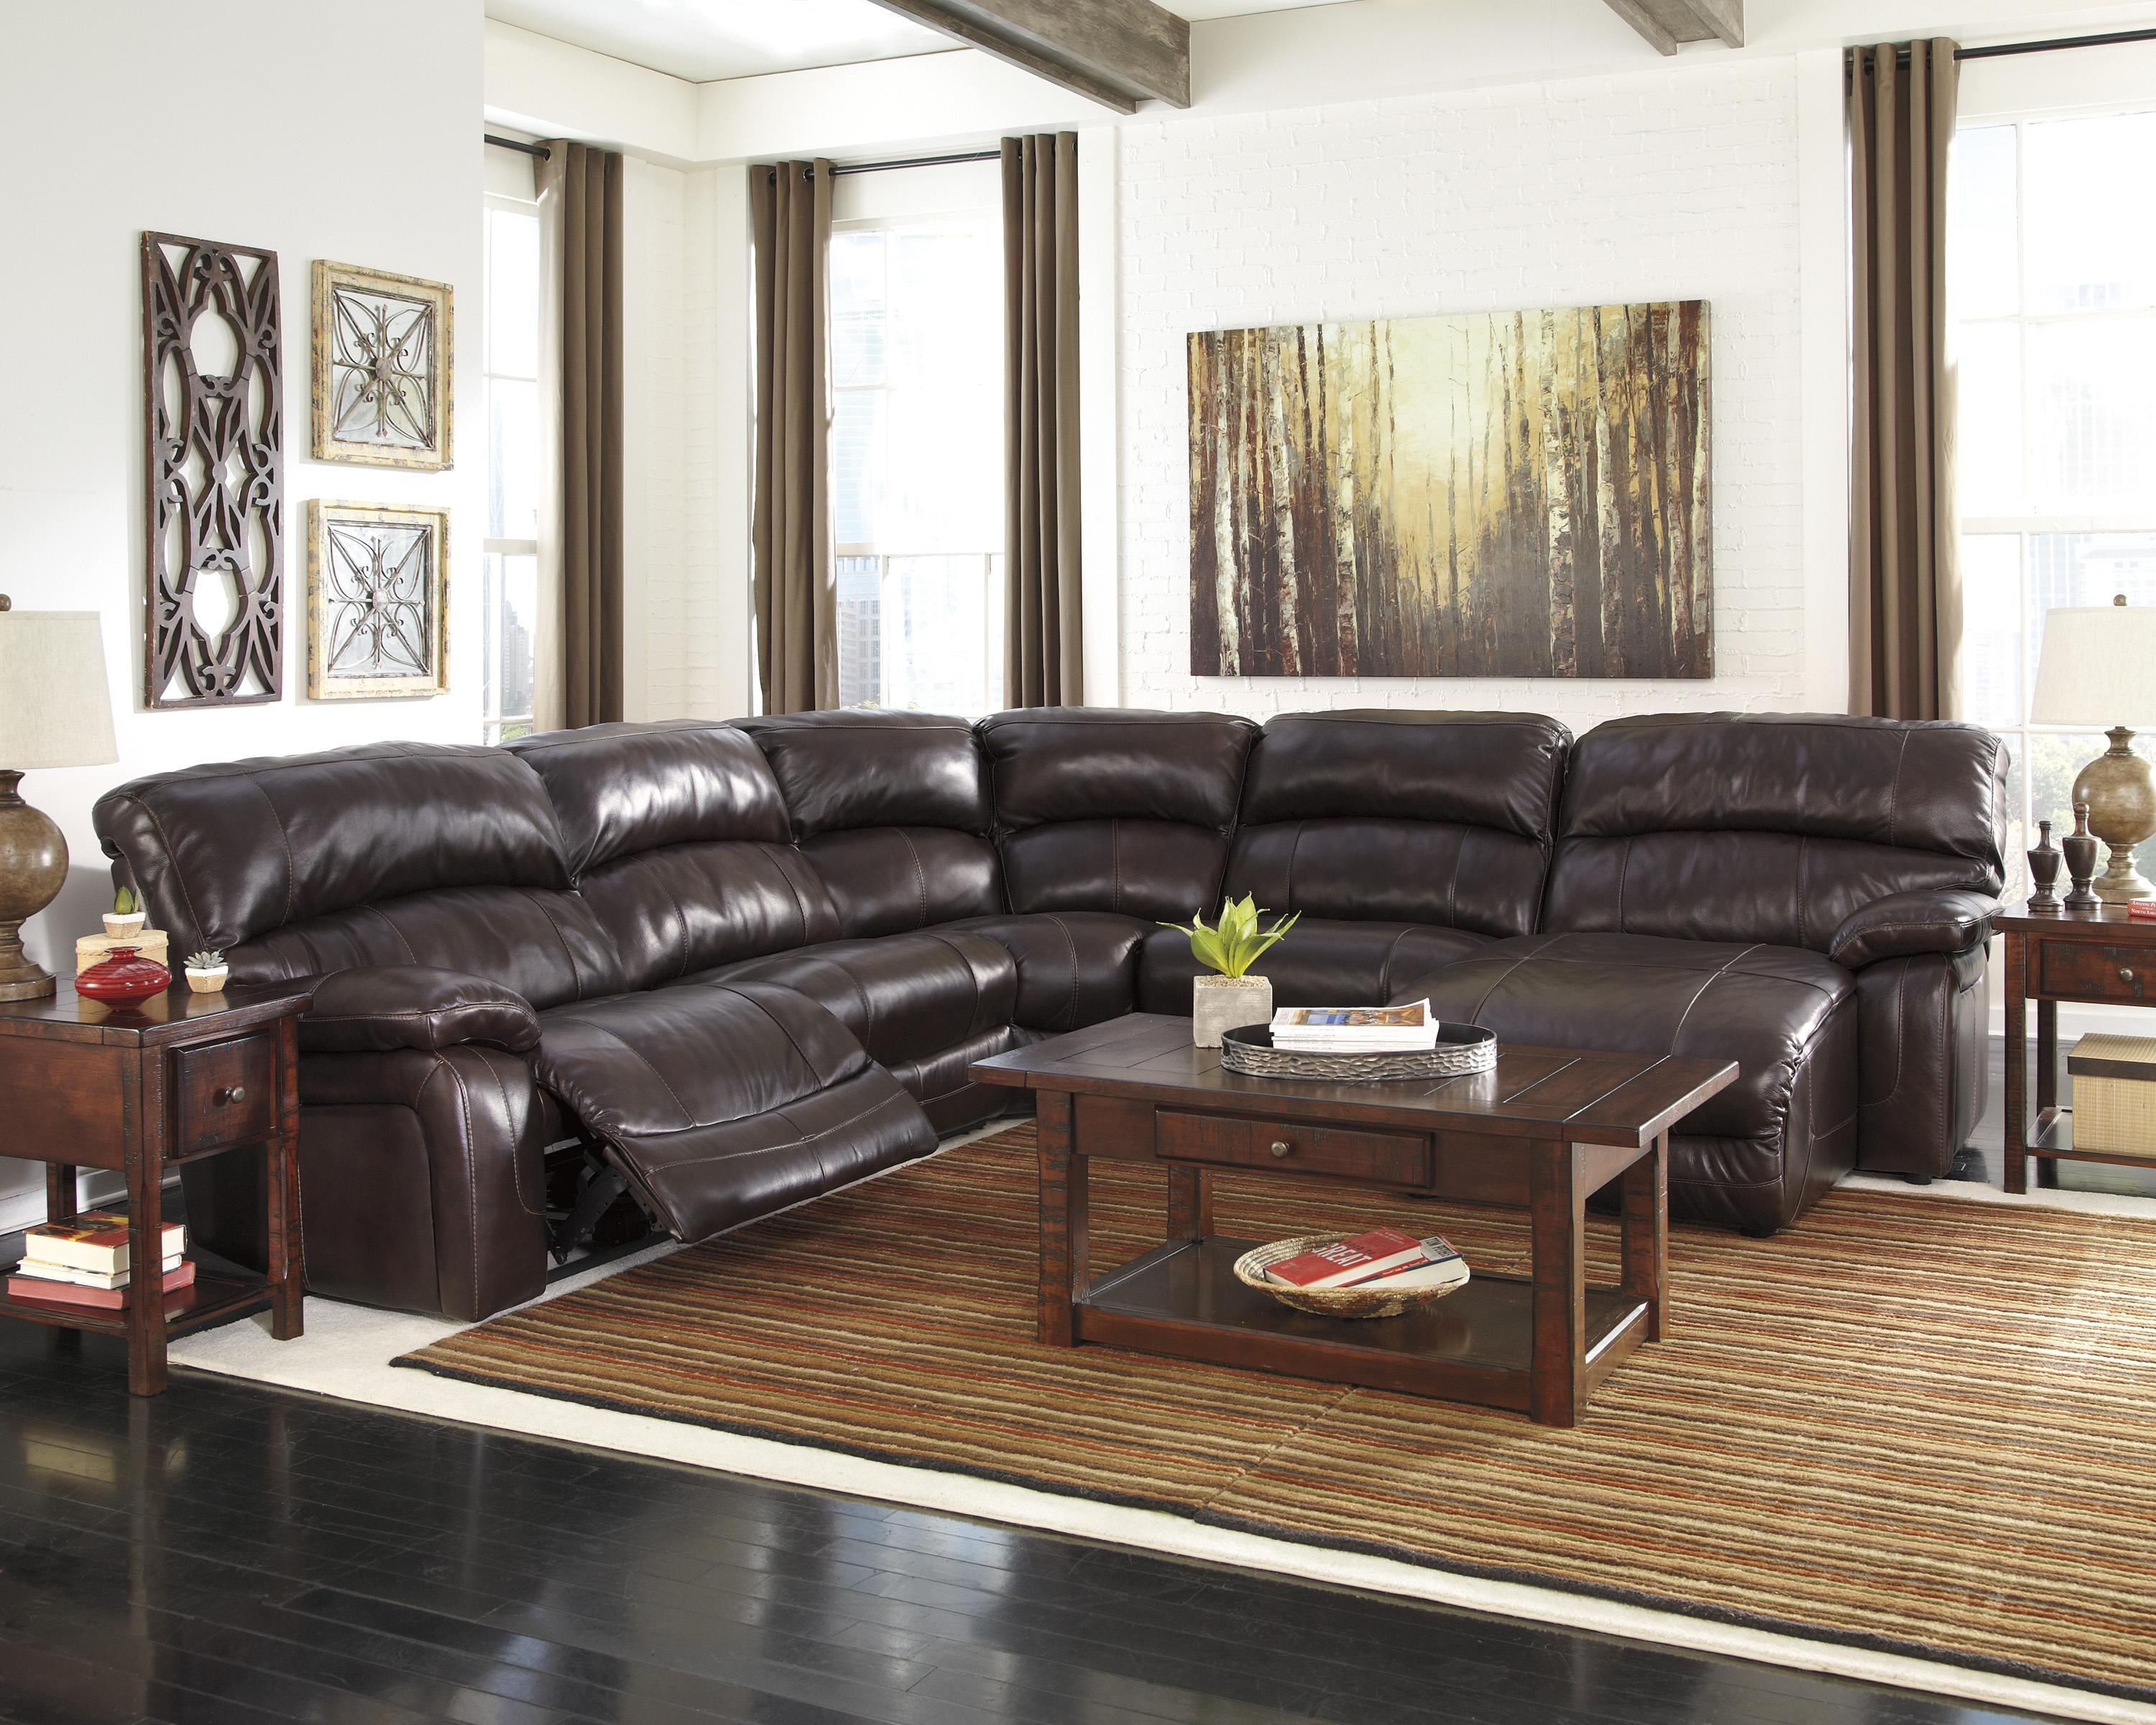 Signature Design by Ashley Damacio - Dark Brown Reclining Sectional with Right Press Back Chaise : ashley reclining sectional - Sectionals, Sofas & Couches